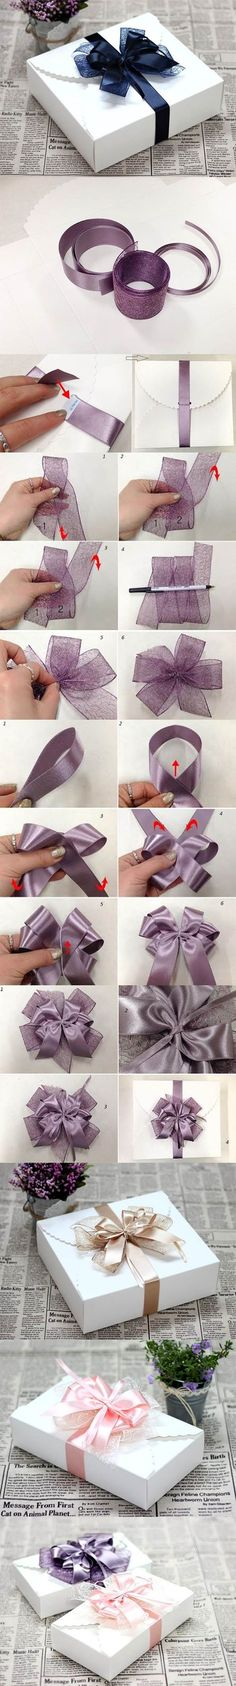 DIY Ribbon Bow for Gift Box Packaging | iCreativeIdeas.com LIKE Us on Facebook ==> https://www.facebook.com/icreativeideas